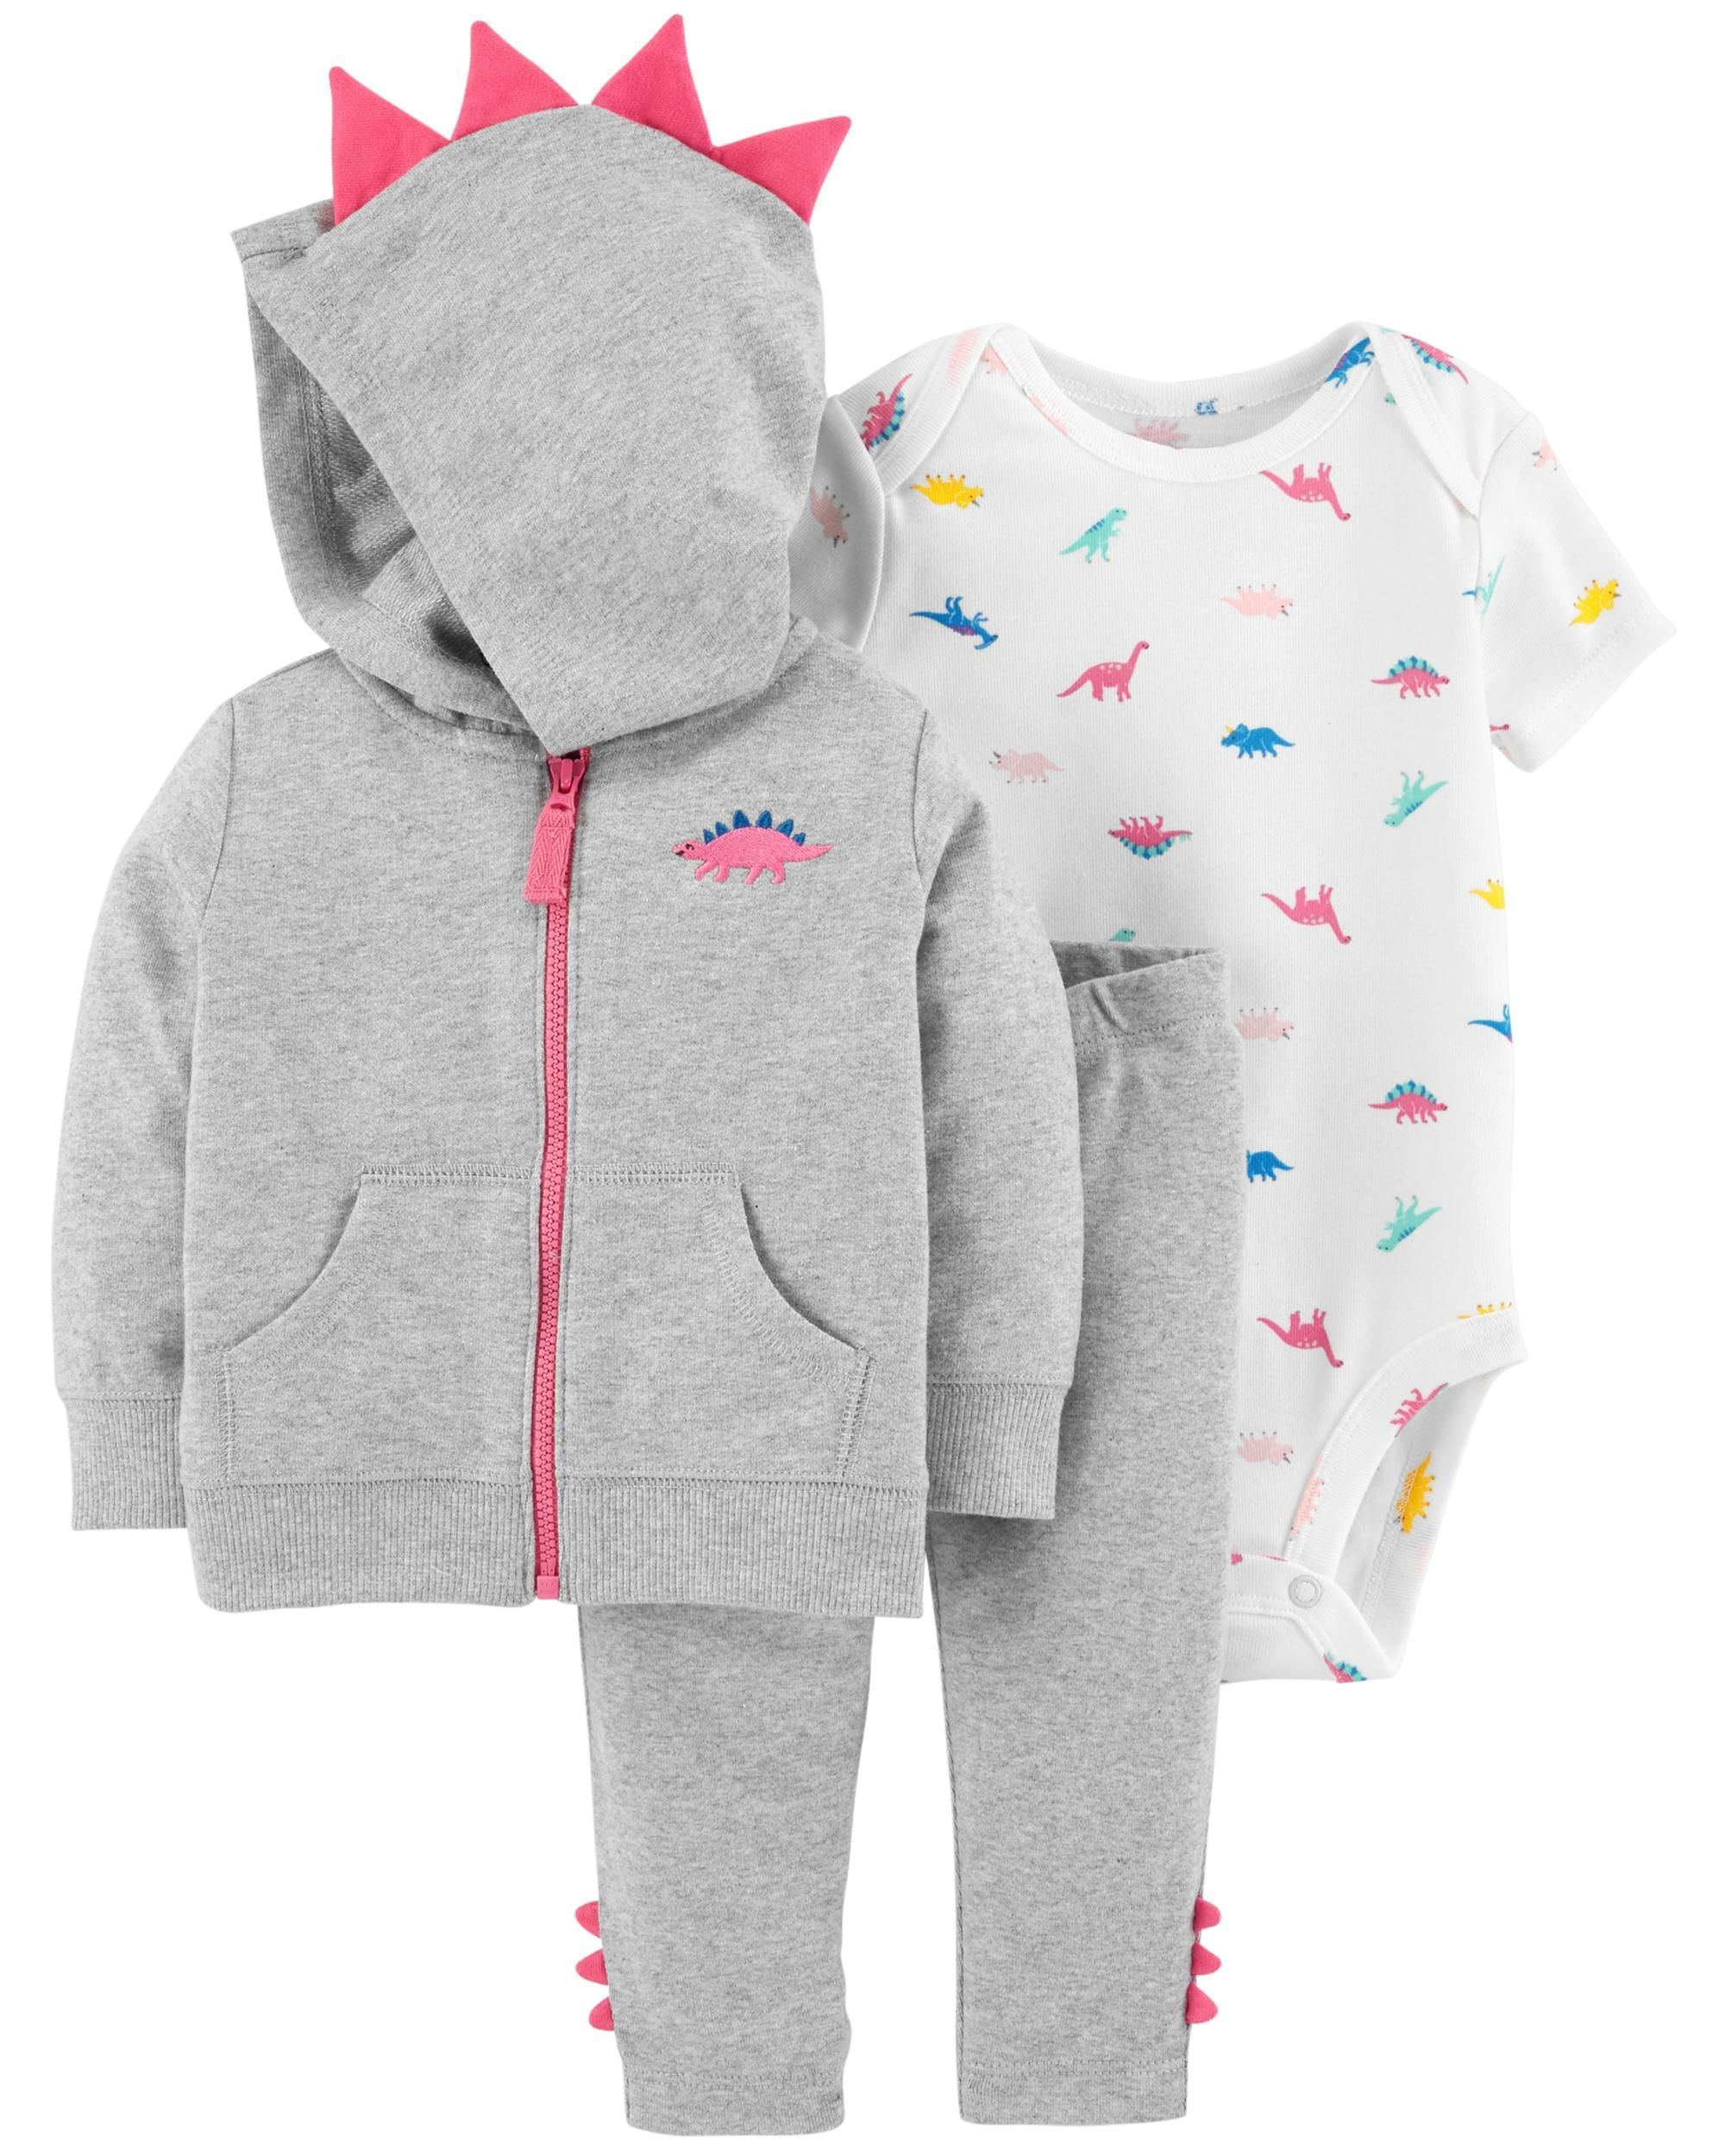 144a66dff Featuring a dinosaur bodysuit, coordinating spike pants and a zip-up spike  jacket, this 3-piece set lets your baby dinosaur layer up or layer down all  year ...